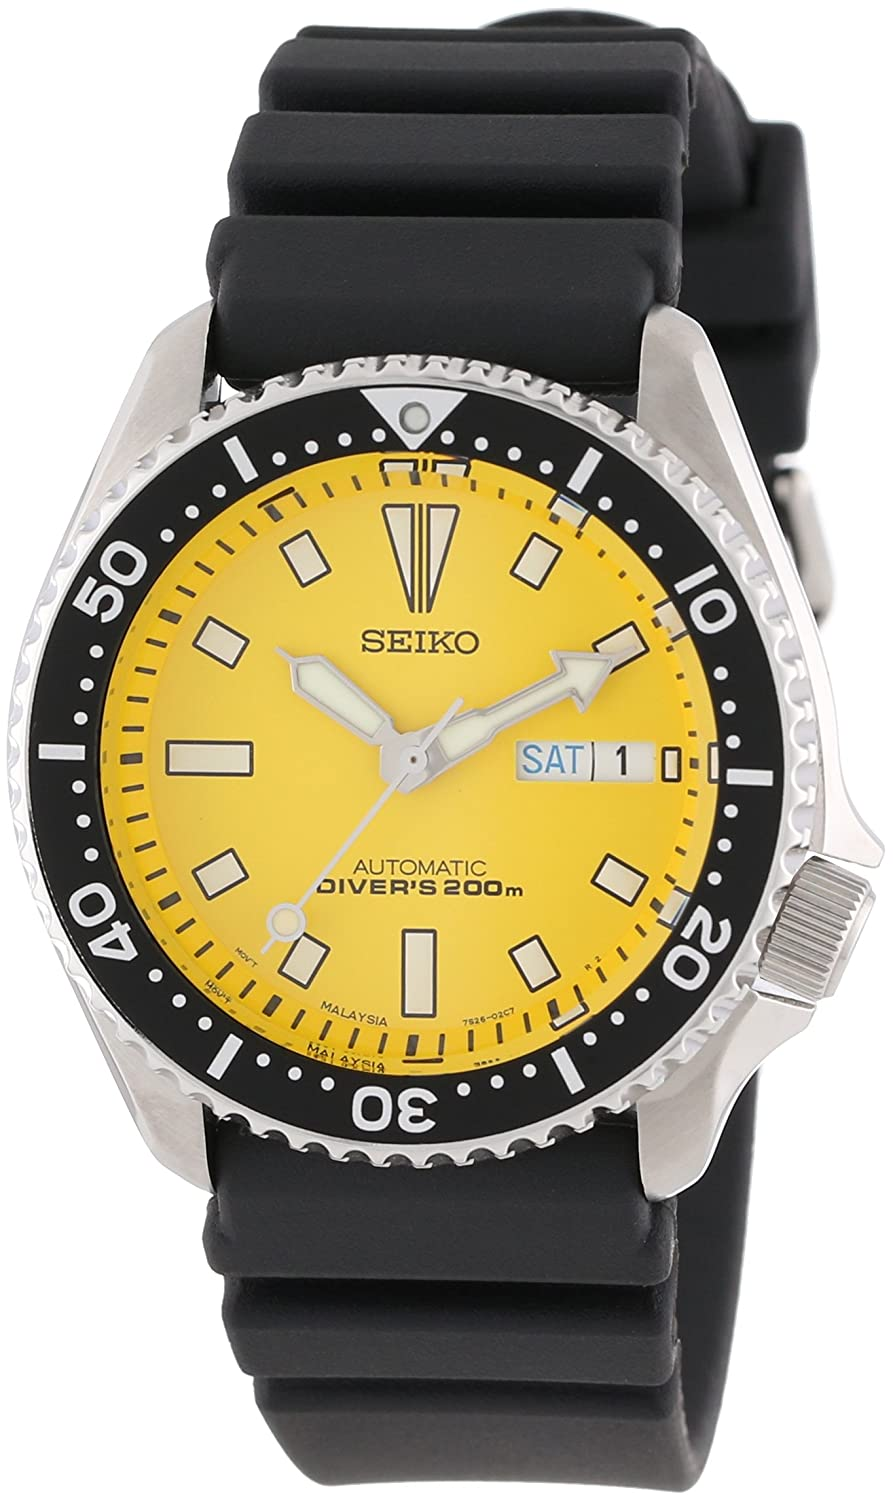 seiko men s skxa35 stainless steel automatic dive watch seiko seiko men s skxa35 stainless steel automatic dive watch seiko amazon co uk watches